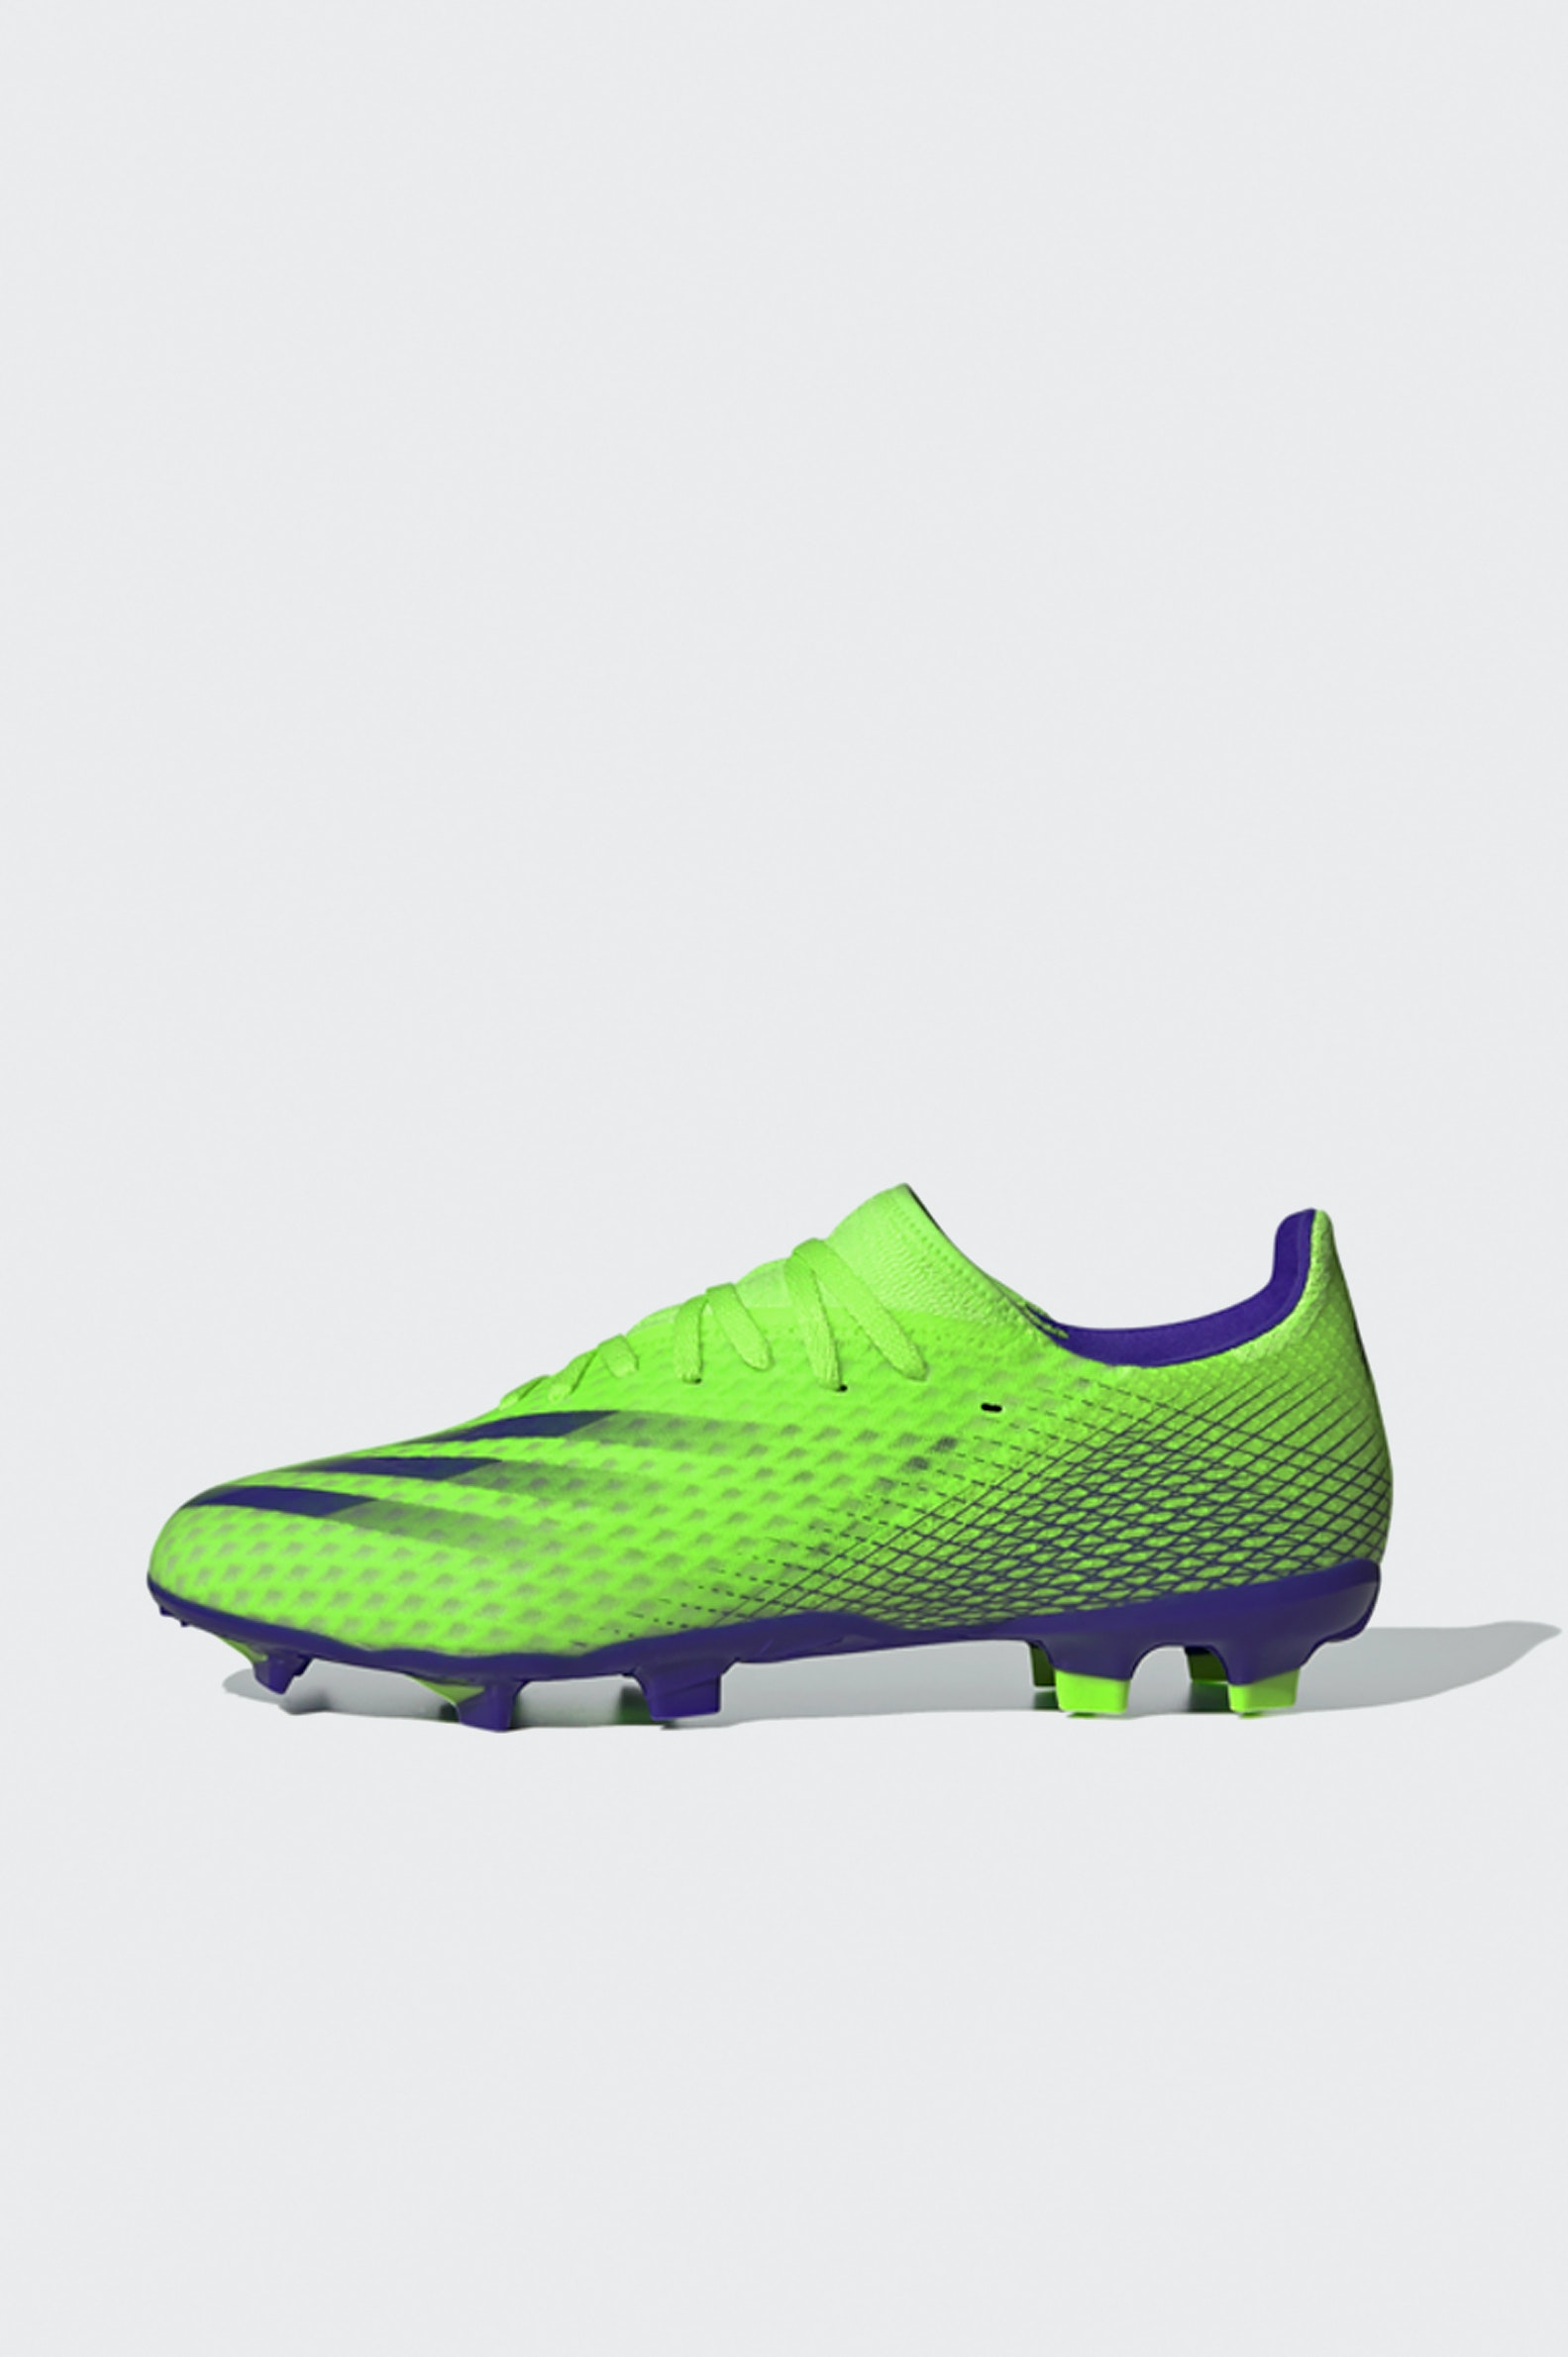 CHAUSSURES FOOTBALL ADIDAS X HOMME